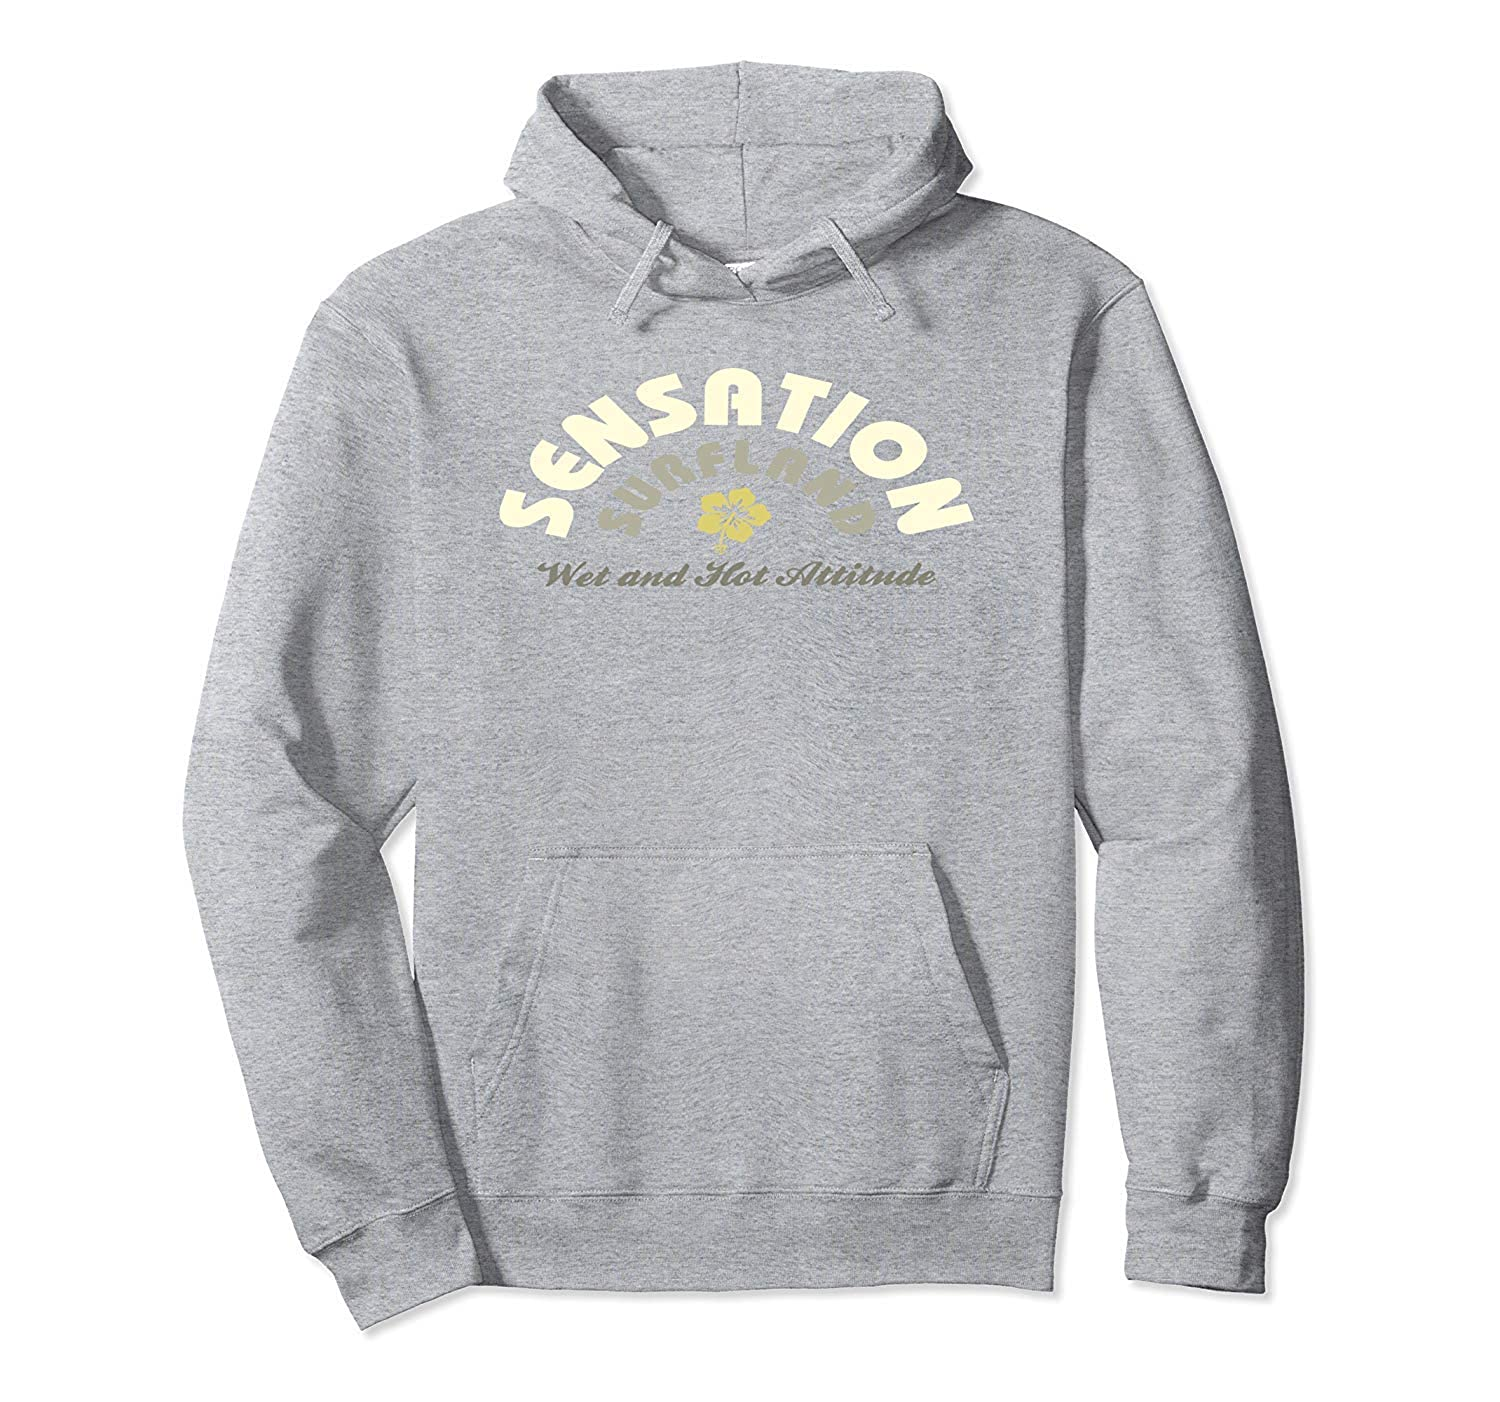 Pullover Hoodie Funny Sensation Surf Land Wet and Hot Attitude ...